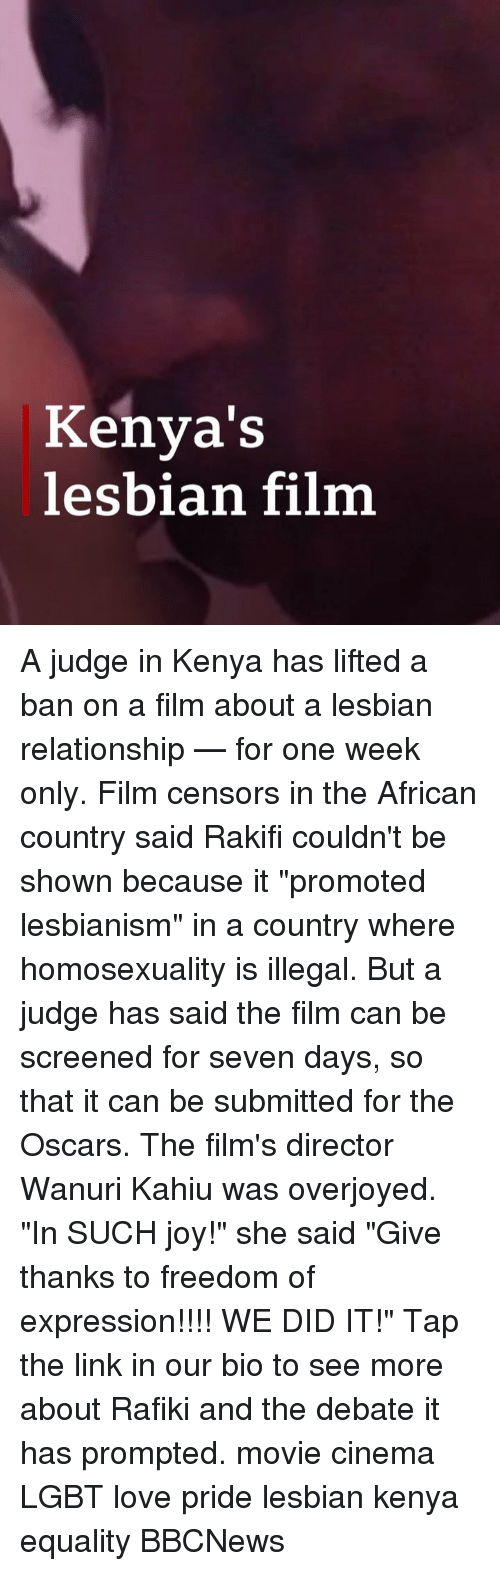 """Lgbt, Love, and Memes: Kenva'S  lesbian film A judge in Kenya has lifted a ban on a film about a lesbian relationship — for one week only. Film censors in the African country said Rakifi couldn't be shown because it """"promoted lesbianism"""" in a country where homosexuality is illegal. But a judge has said the film can be screened for seven days, so that it can be submitted for the Oscars. The film's director Wanuri Kahiu was overjoyed. """"In SUCH joy!"""" she said """"Give thanks to freedom of expression!!!! WE DID IT!"""" Tap the link in our bio to see more about Rafiki and the debate it has prompted. movie cinema LGBT love pride lesbian kenya equality BBCNews"""